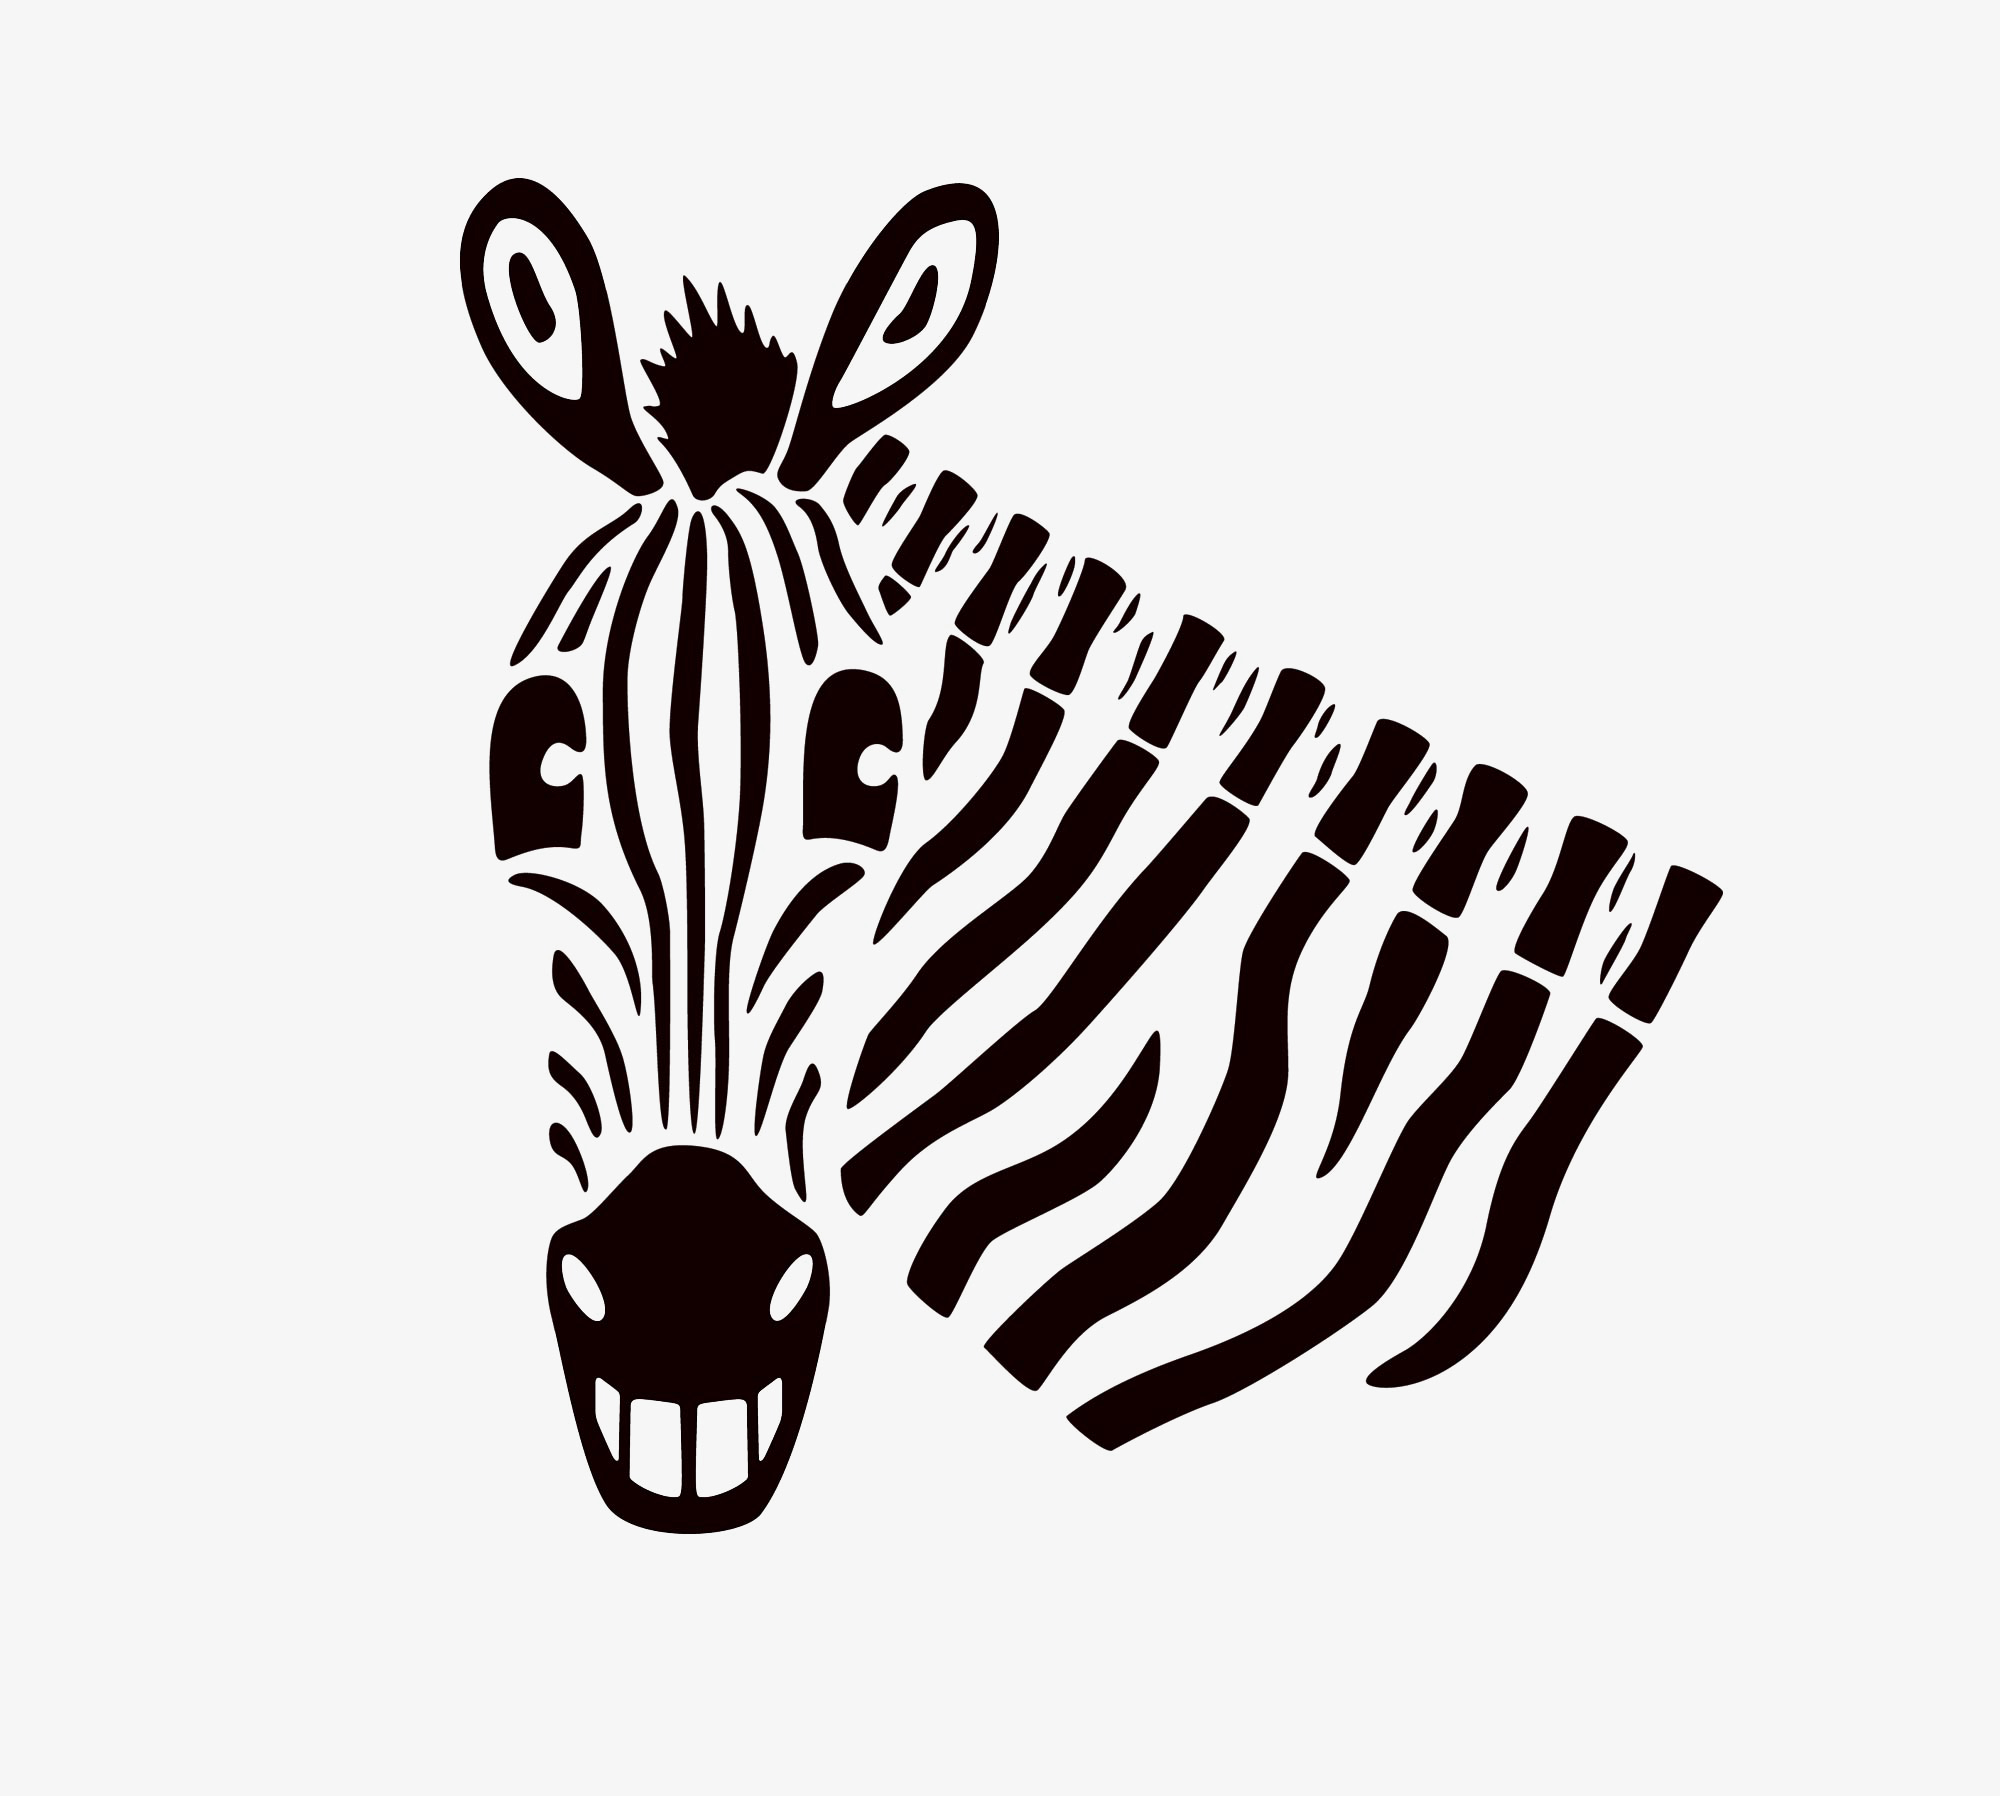 Illustration of a smiling zebra.